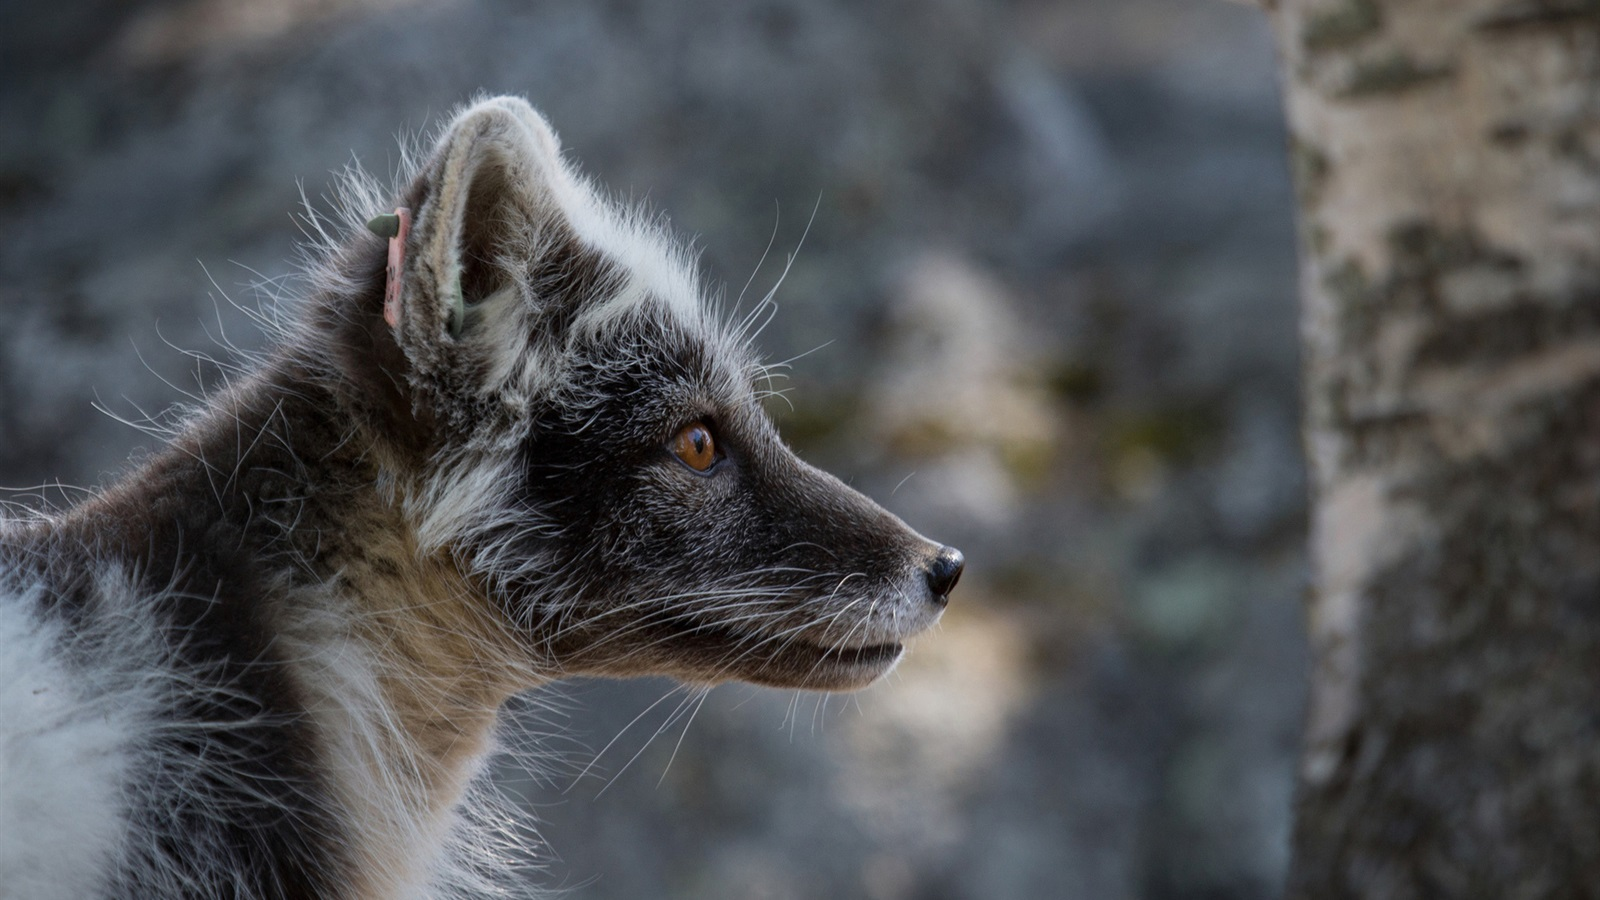 Wallpaper Side View Of Black Arctic Fox 1920x1200 Hd Picture Image